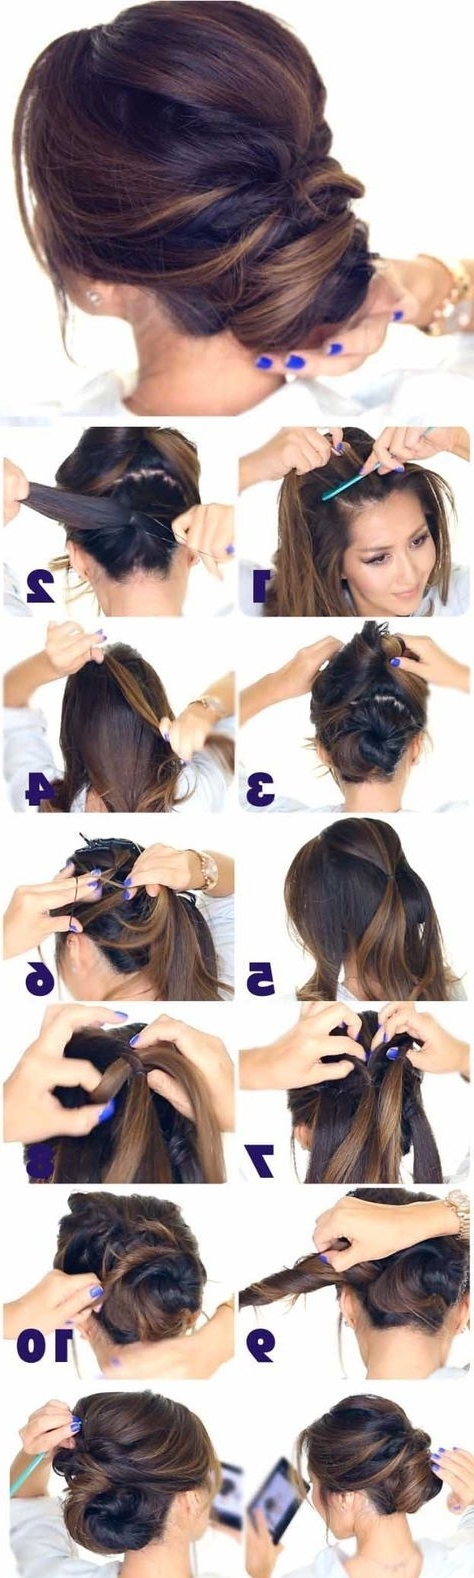 226 Best Hair Images On Pinterest Inside Tied Up Wedding Hairstyles For Long Hair (View 2 of 15)